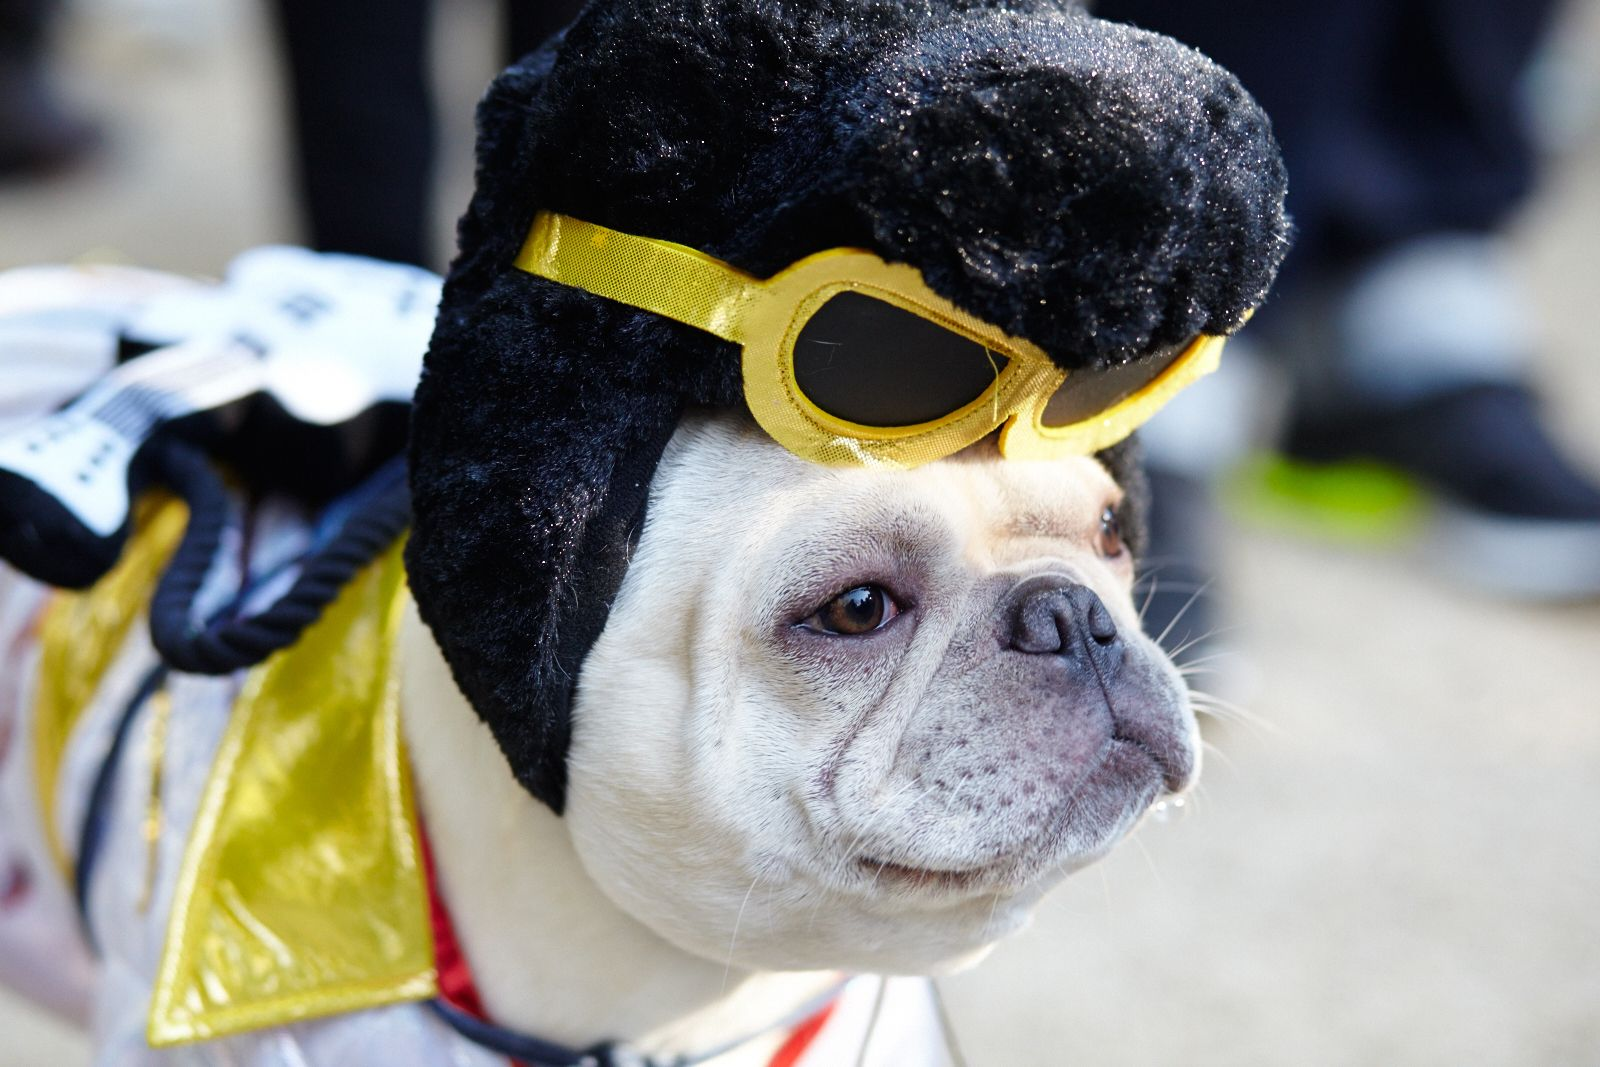 elvis dog costume. u201c & The Best DIY Dog Costumes for Halloween - PEDIGREE Foundation